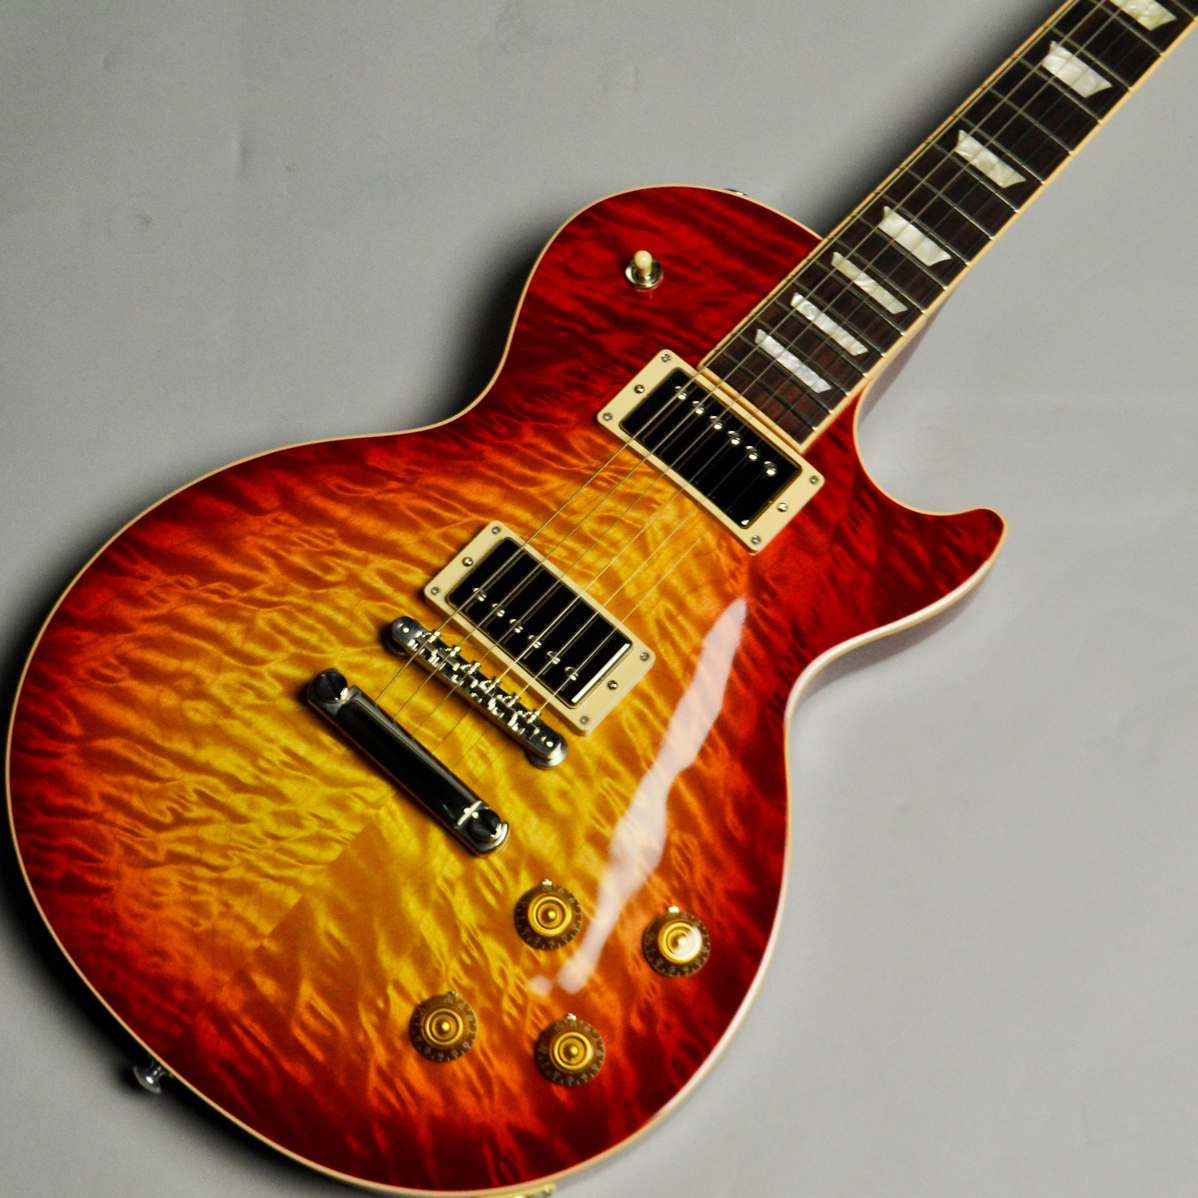 Les Paul Traditional Plus Quilt 2017 Limited Heritage Cherry Sunburstのケース・その他画像